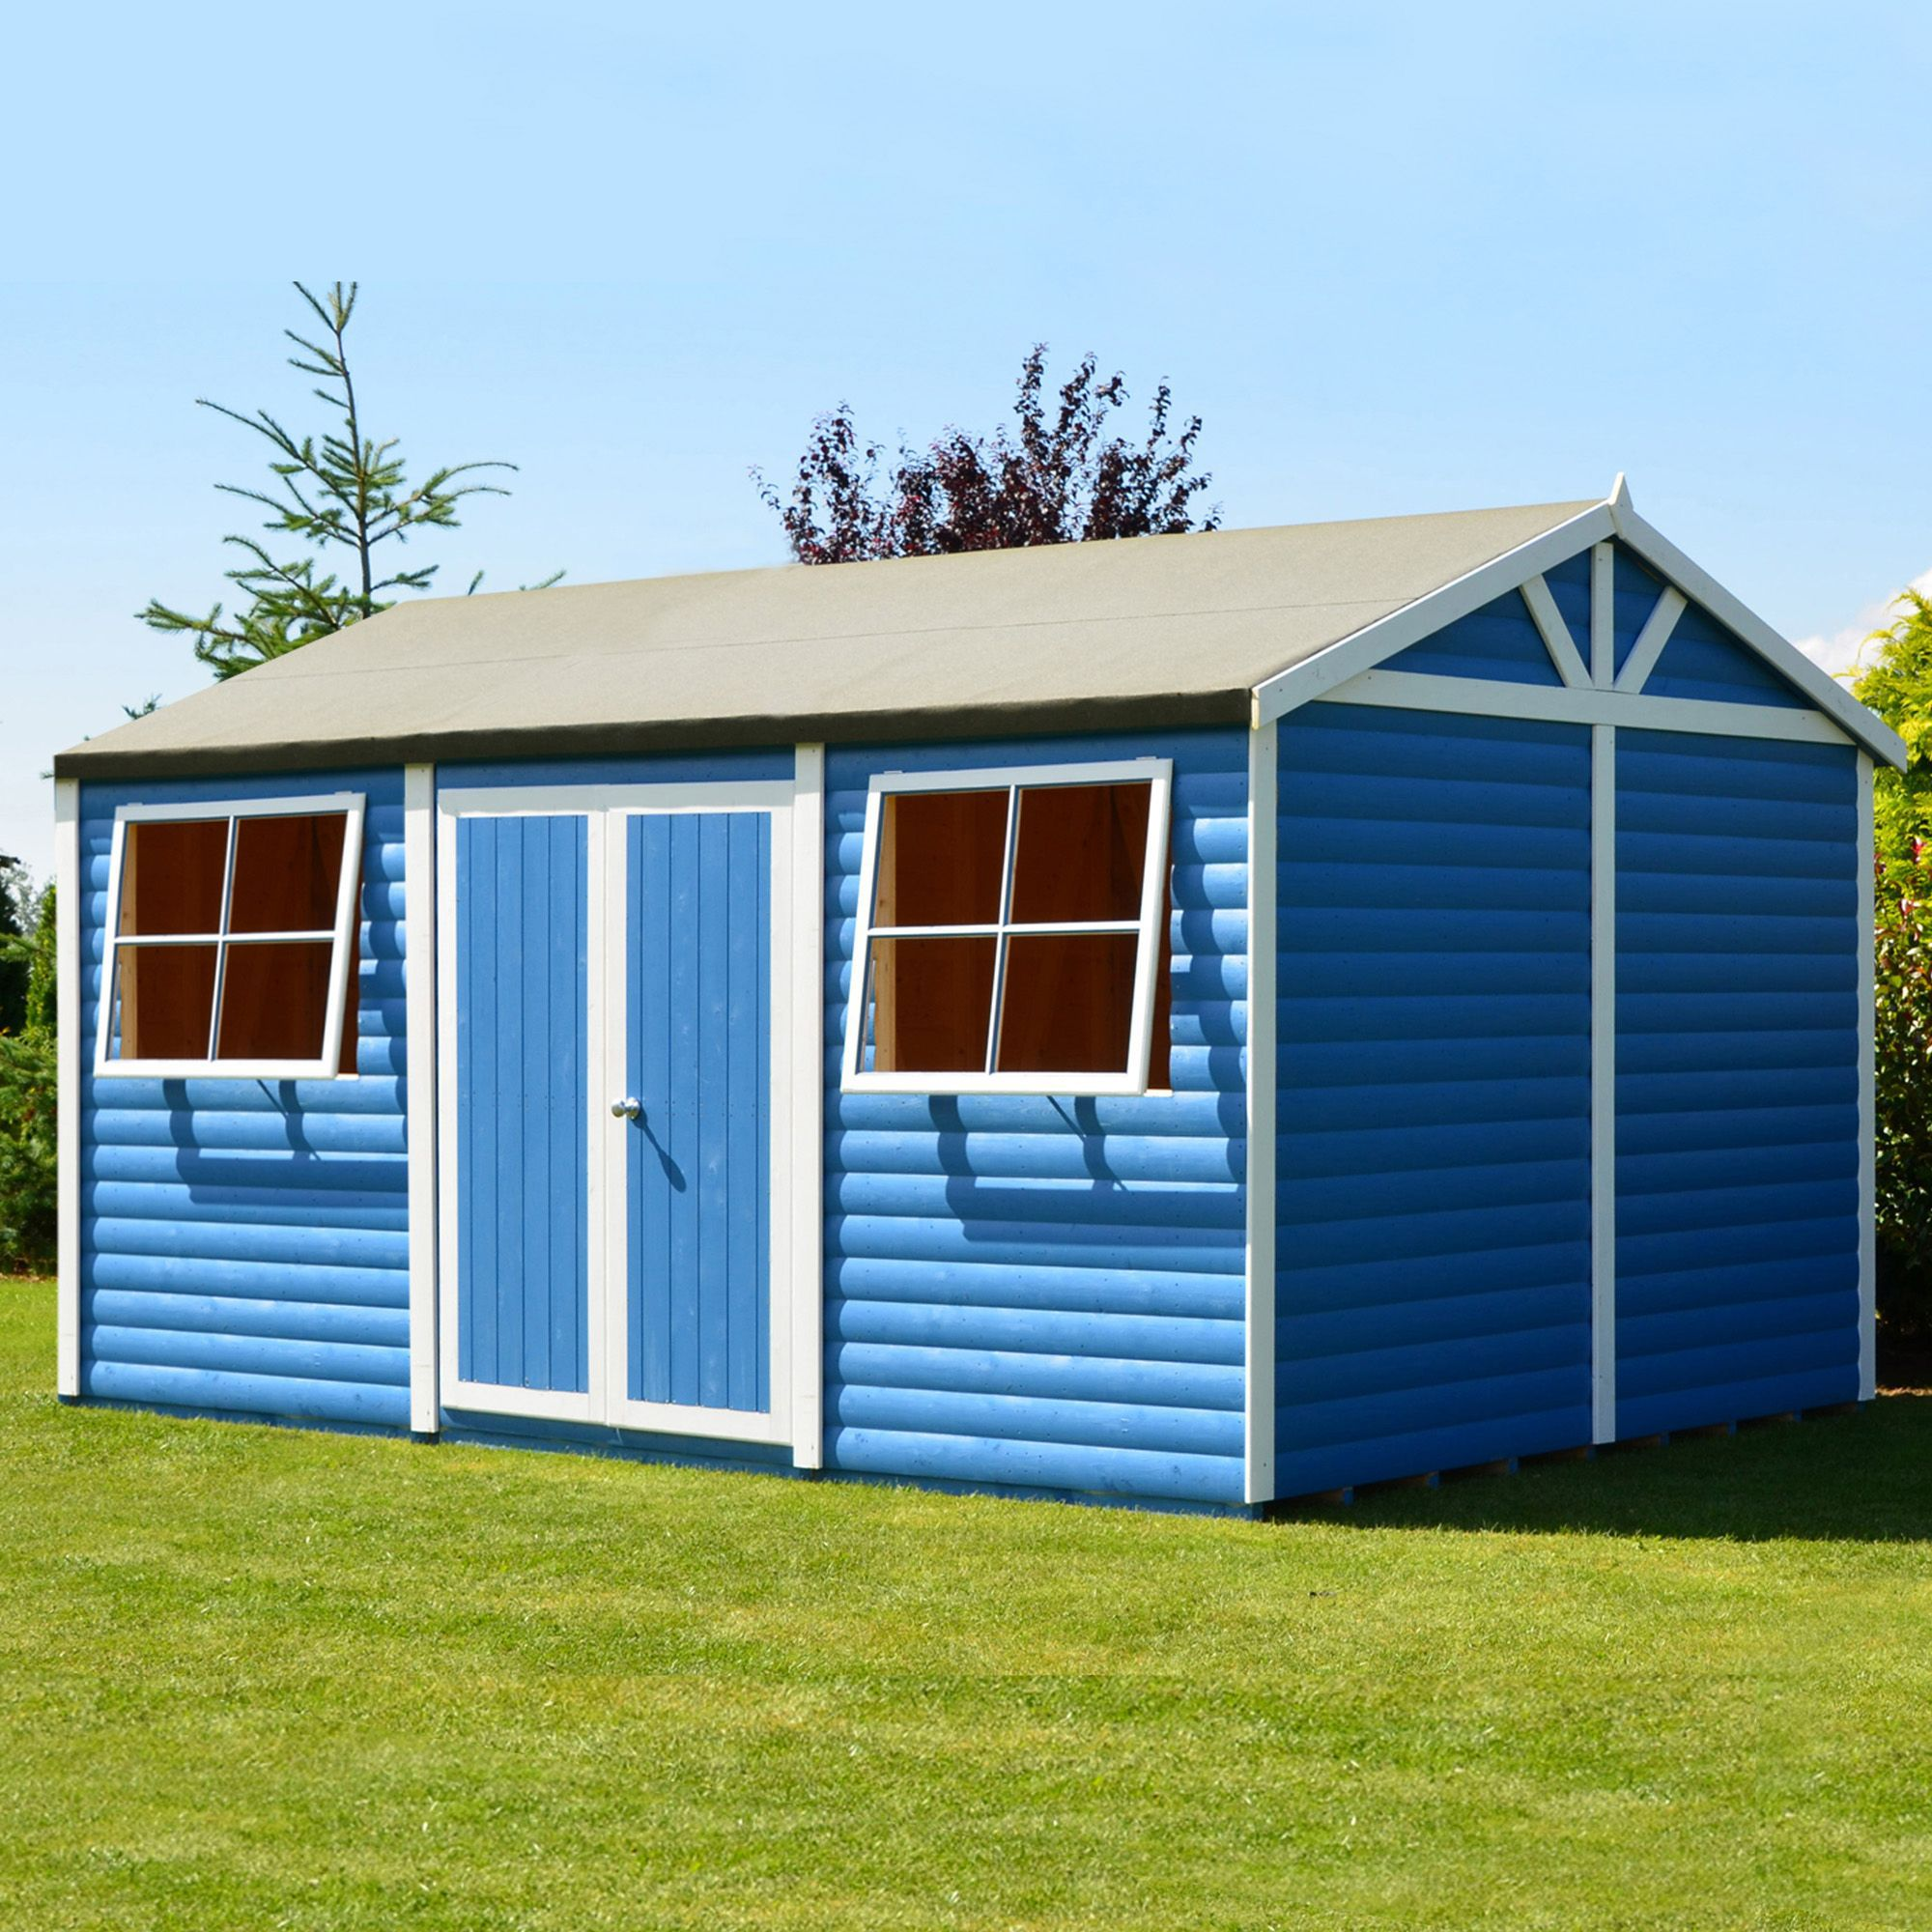 15x10 mammoth loglap timber shed with assembly service. Black Bedroom Furniture Sets. Home Design Ideas